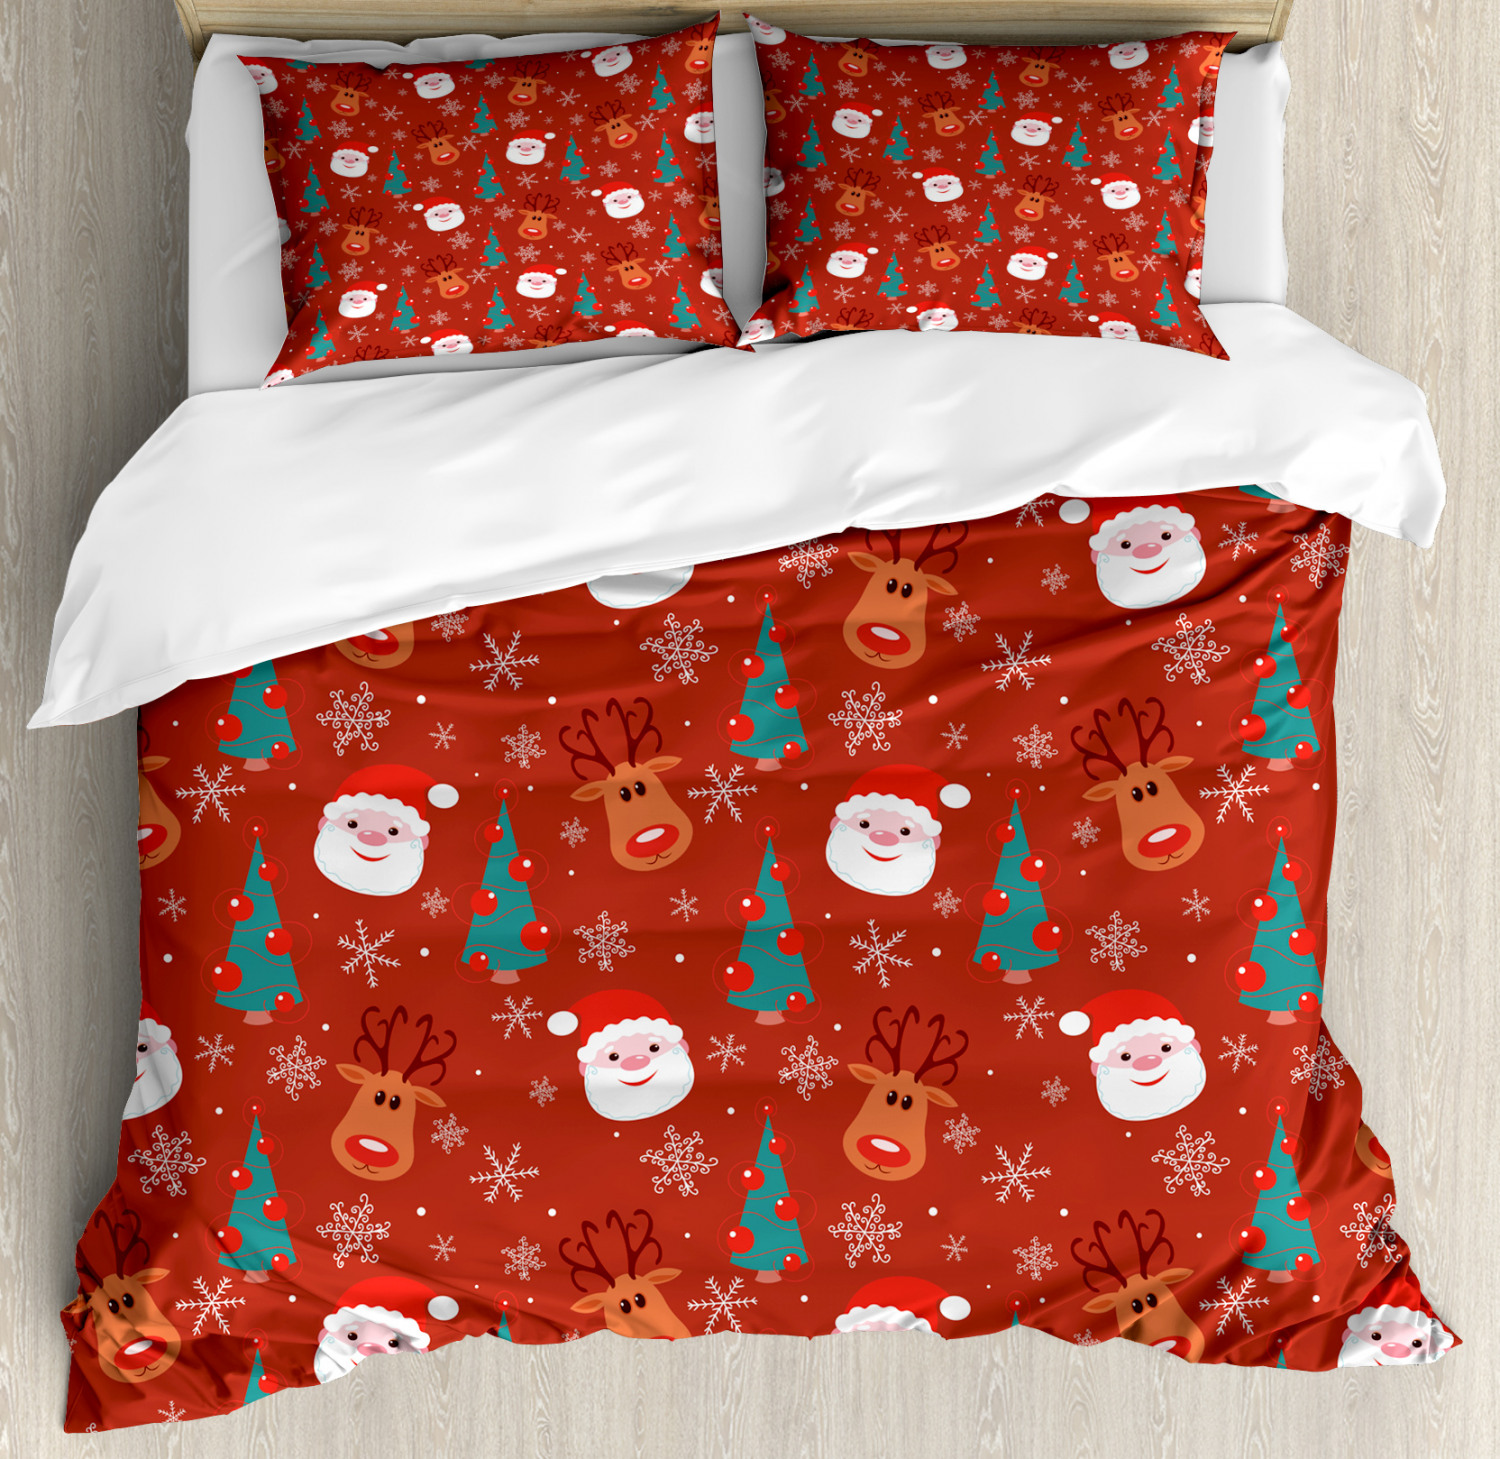 Red Duvet Cover Set with Pillow Shams Merry Xmas Cartoon Santa Print